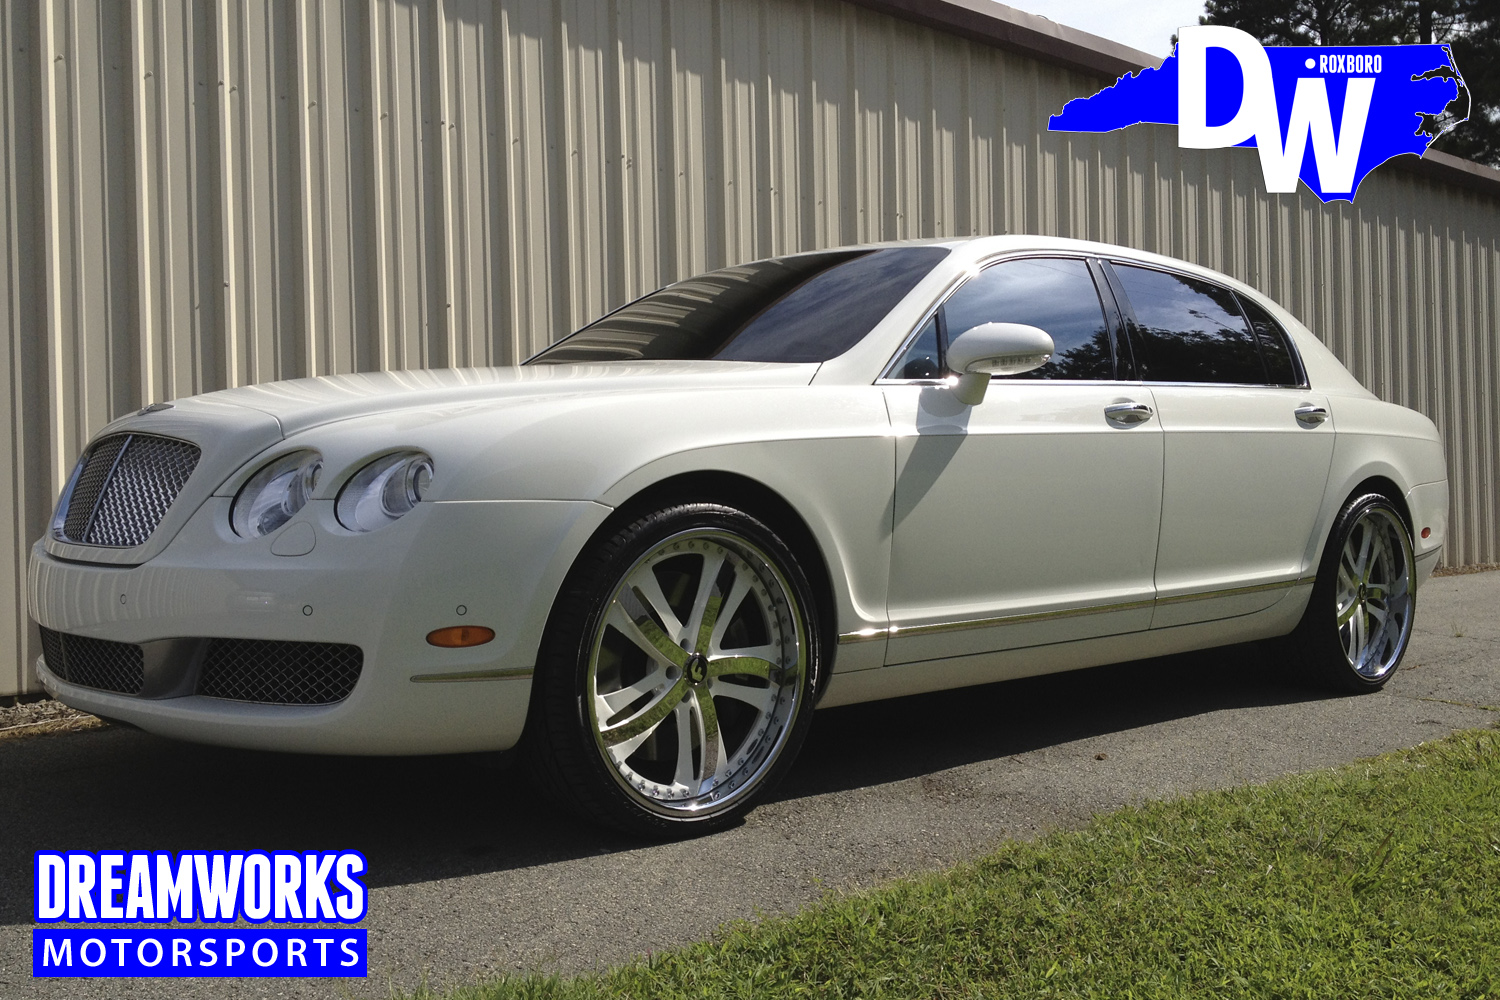 Chris-Wilcox-NBA-Raleigh-Enloe-Whiteville-Maryland-Thunder-Celtics-Bentley-By-Dreamworks-Motorsports-4